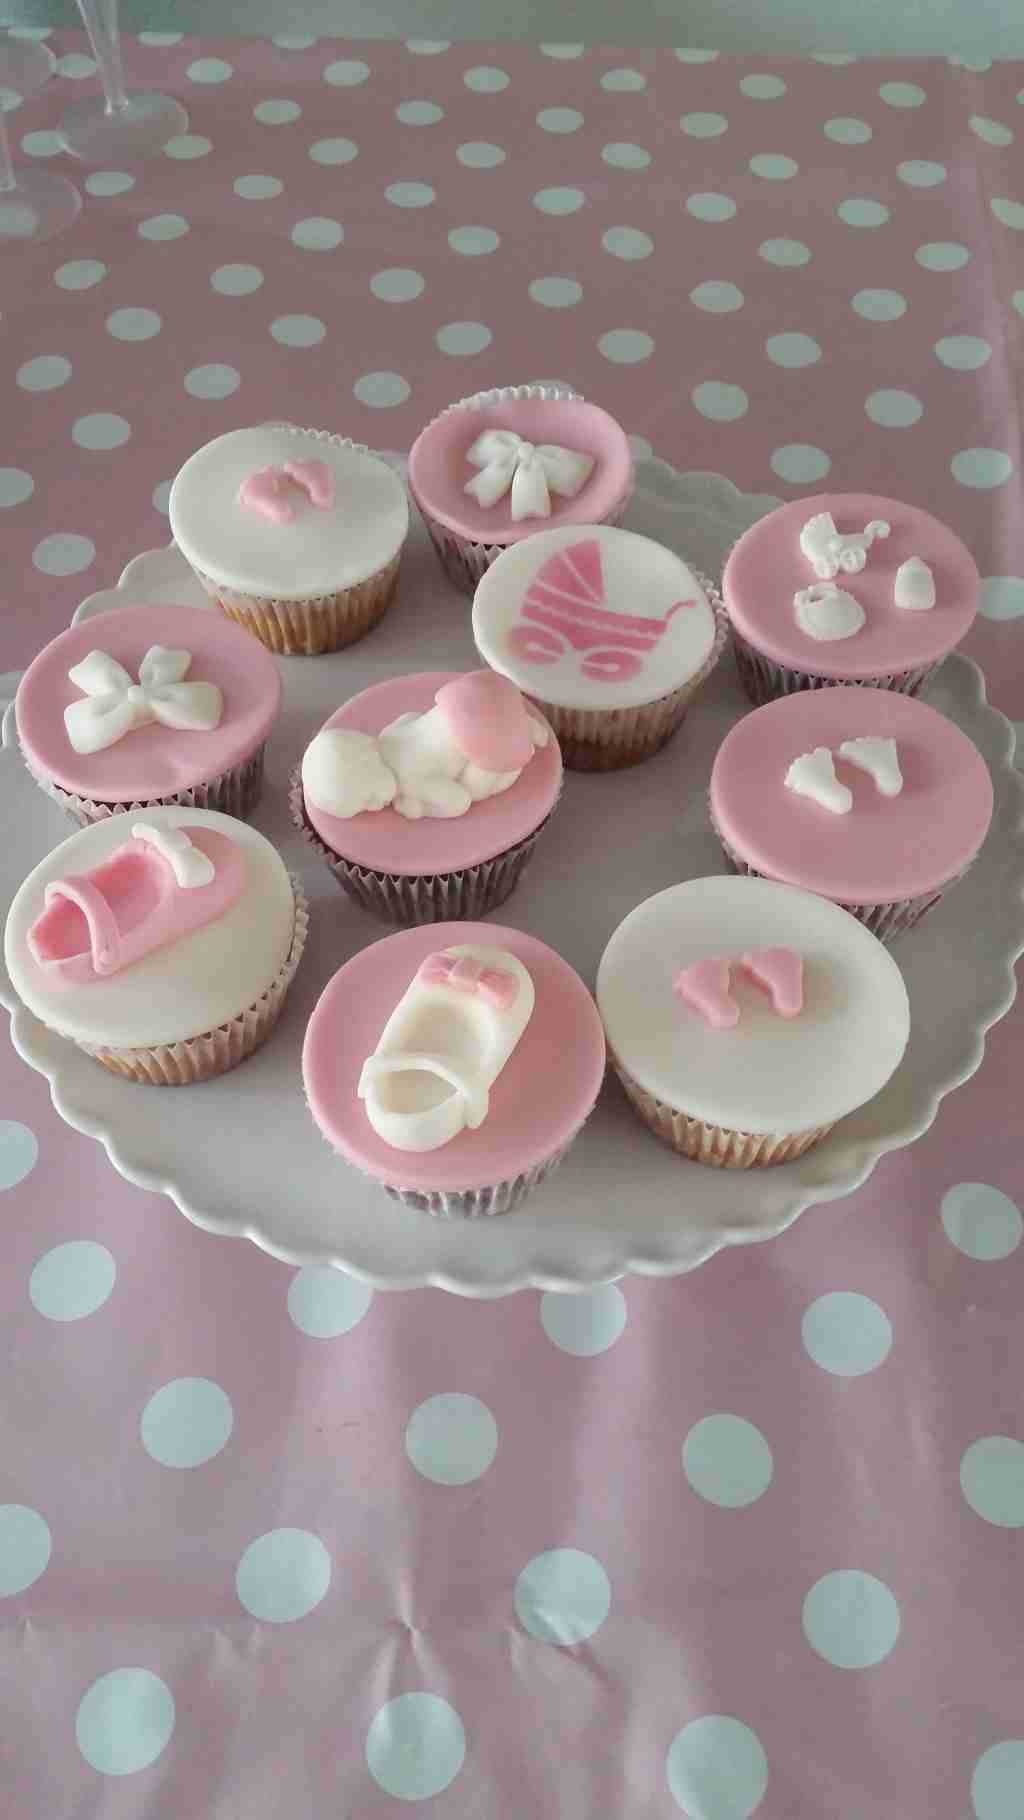 Cupcakes made by Cabolicious